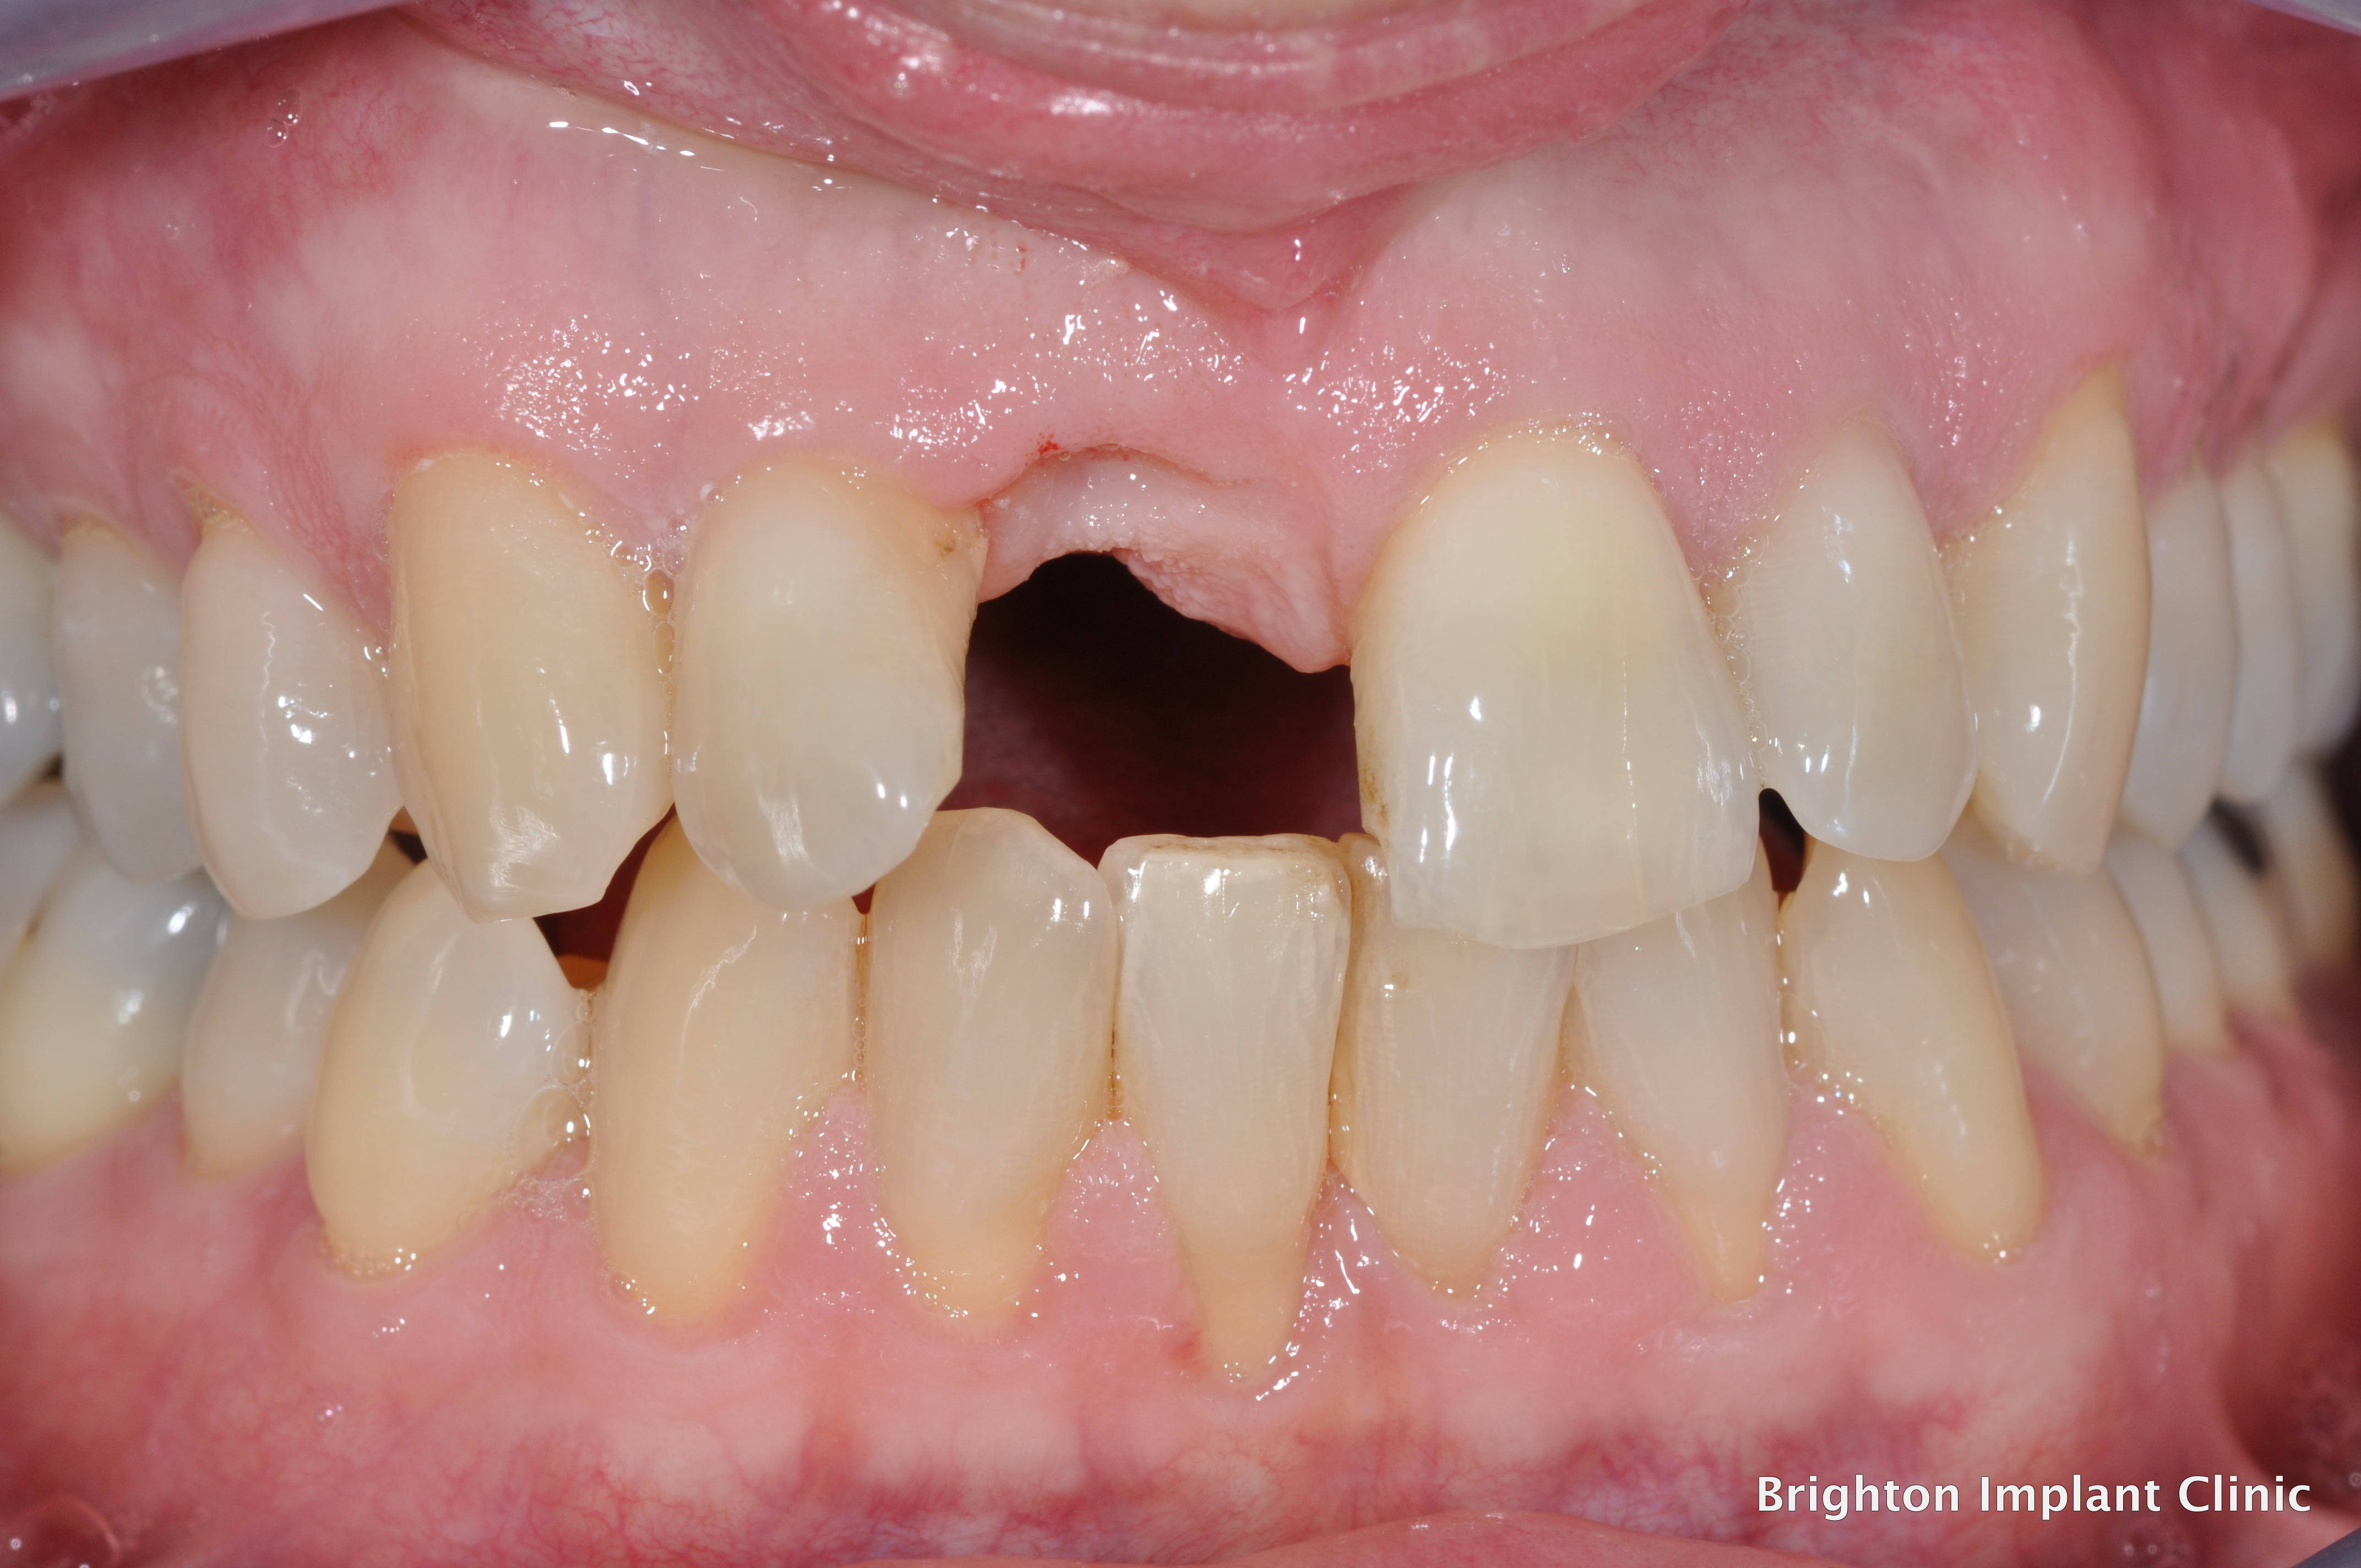 Dental implants can replace missing teeth